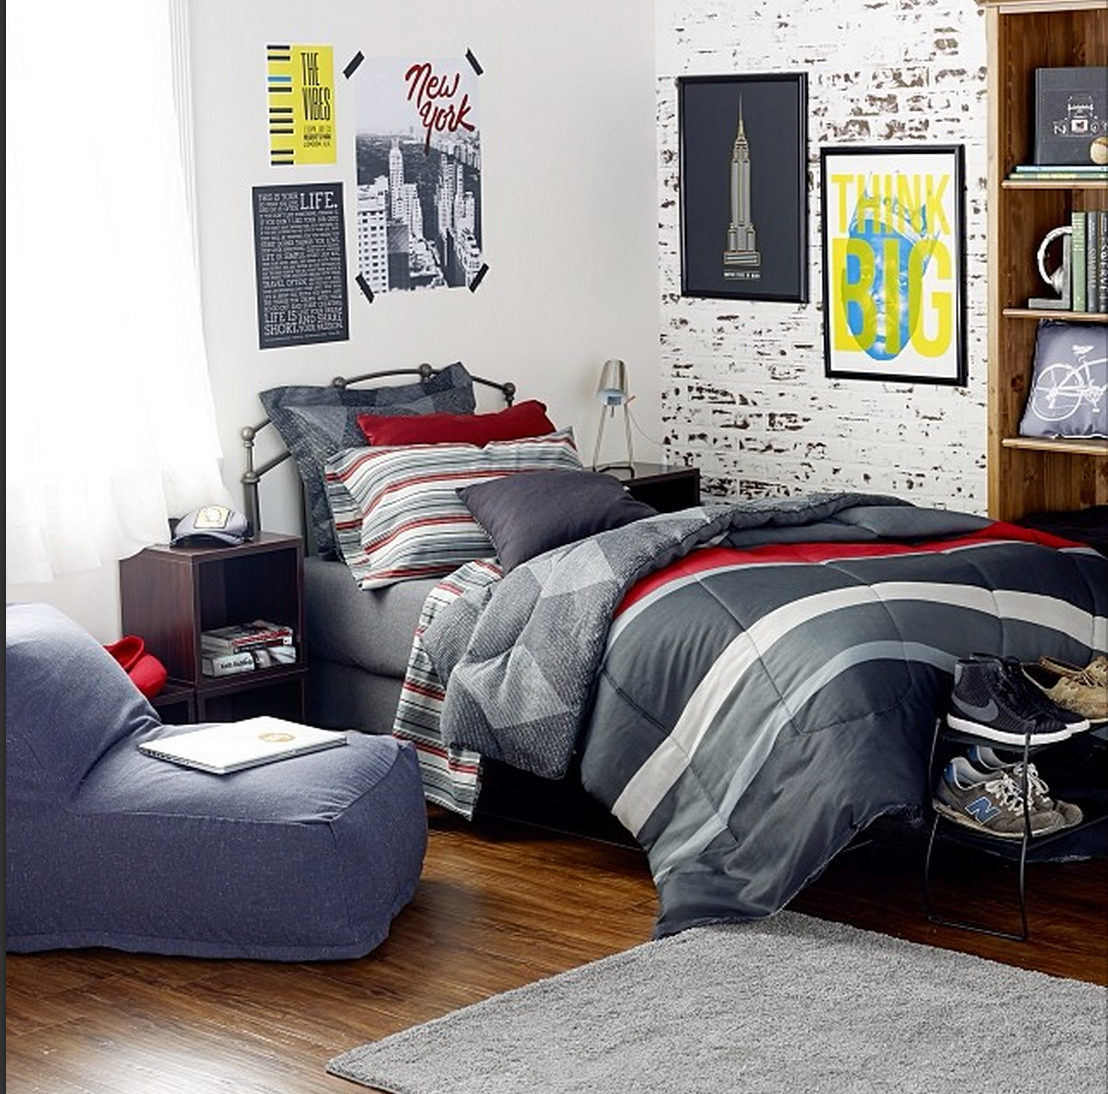 For Guys College Gifts For Him Dorm Decor Dormify Luxury Dorm Room Guy Dorm Rooms Boys Dorm Room